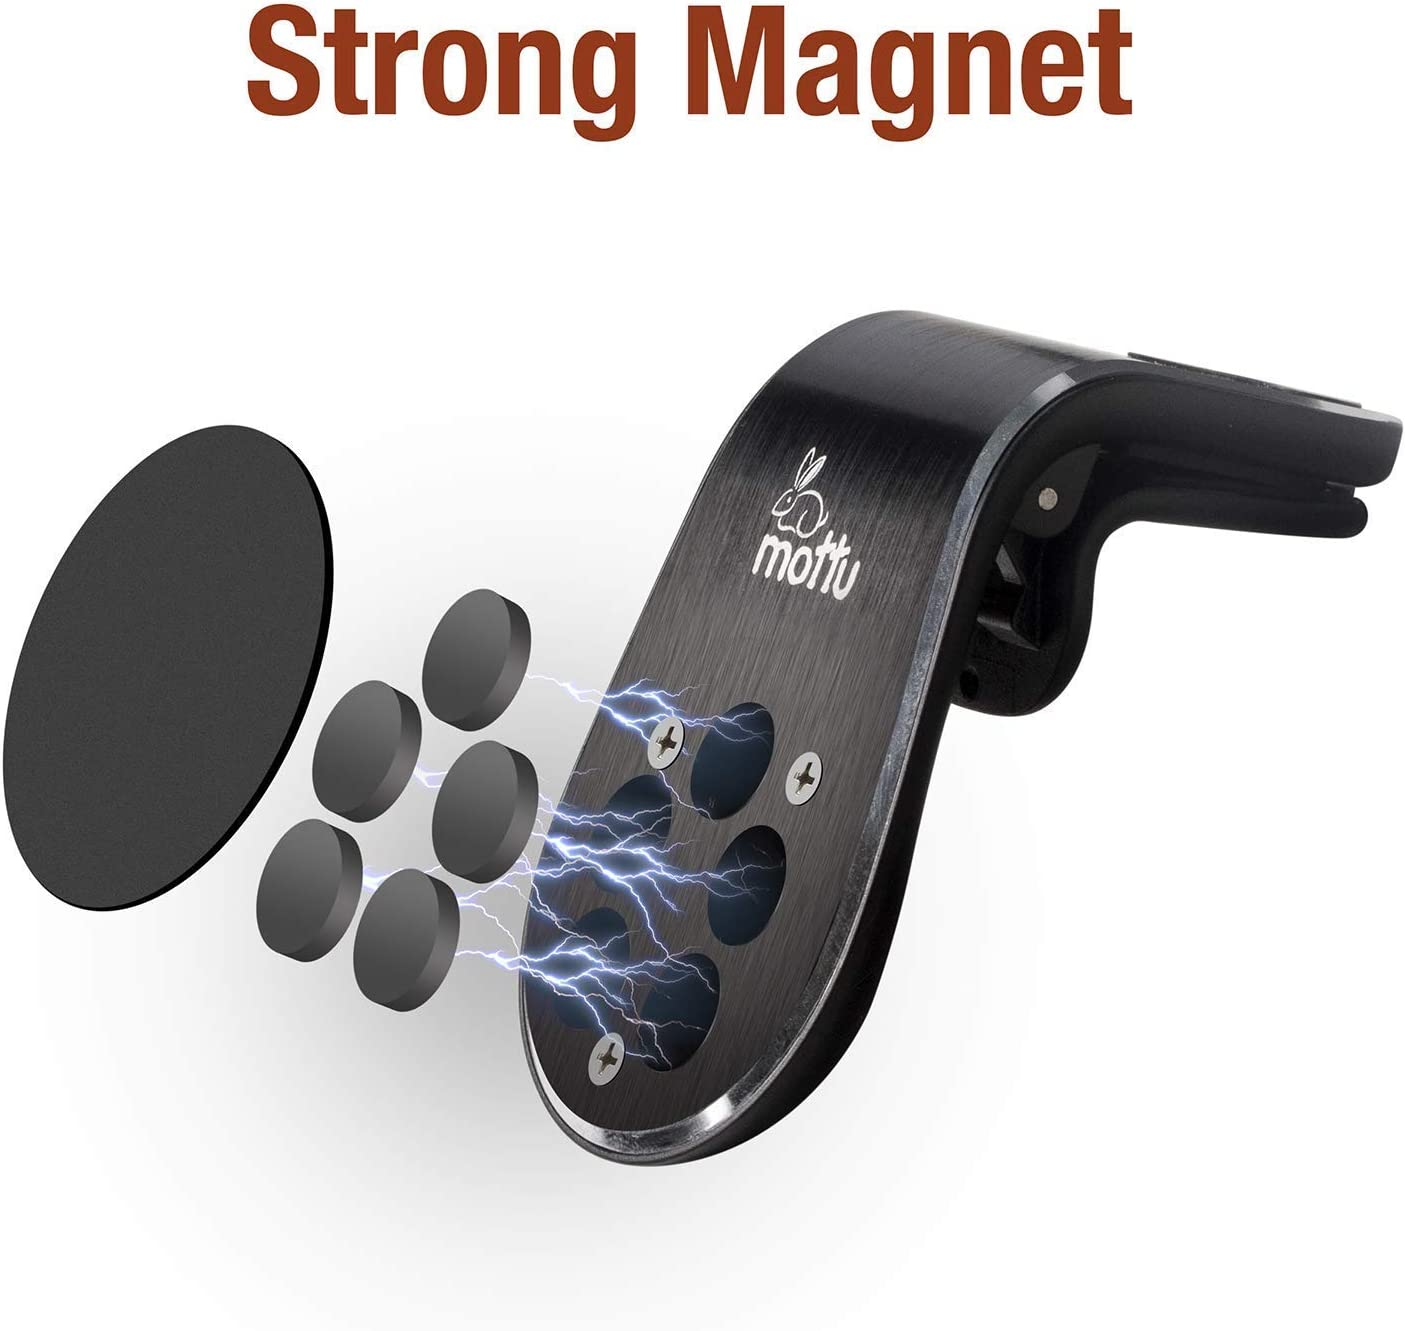 Magnetic Car Vent Phone Mount 1 Pack Anti-Slip Anti-Scratch Phone Vent Clip with Super Strong Magnets 360 Degree Rotation for Safe GPS Navigation Universal Magnetic Vent Mount Non-Sticky Dashboard